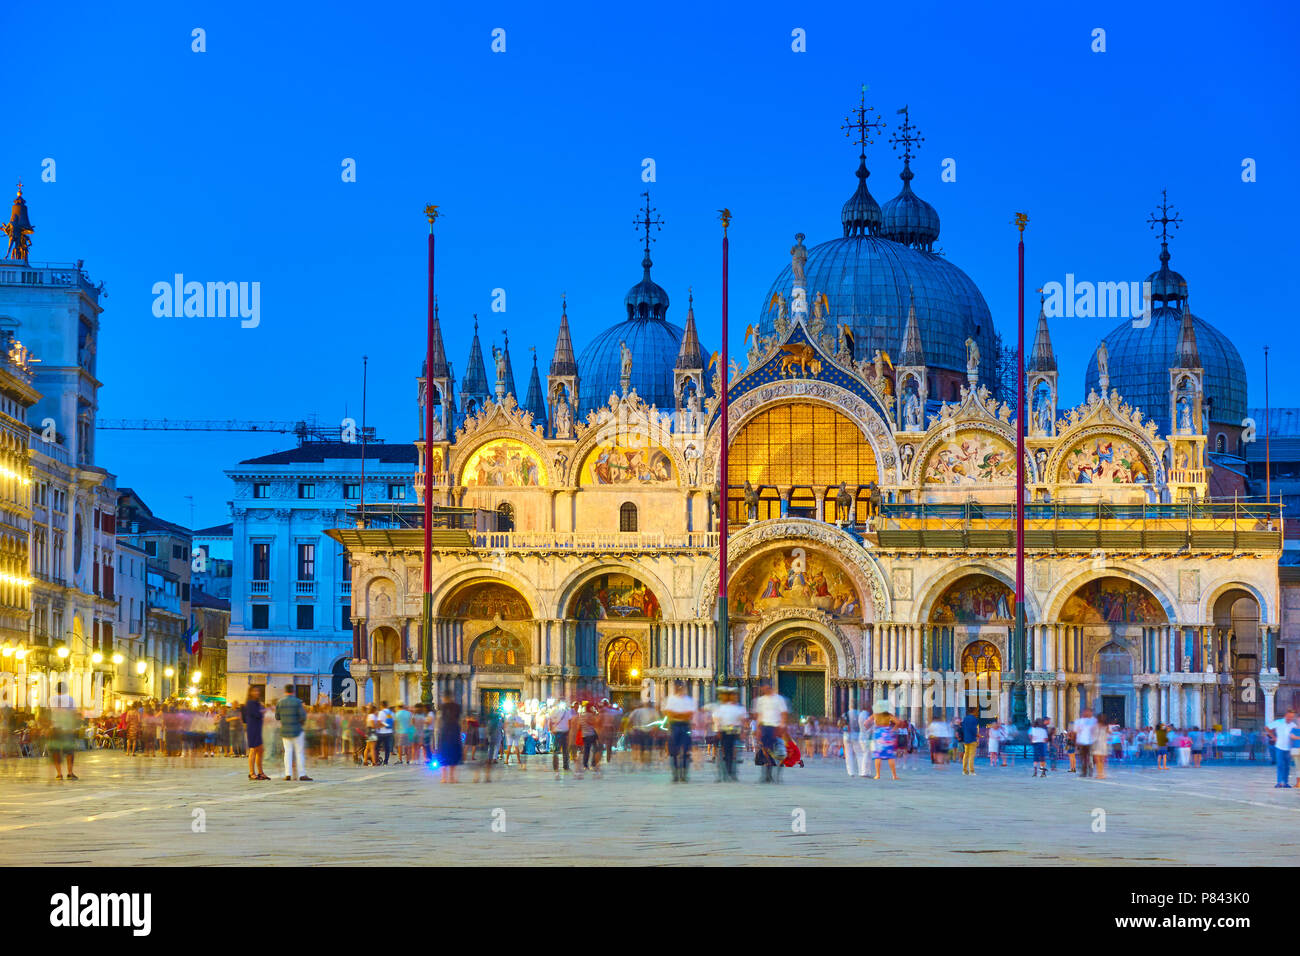 The Patriarchal Cathedral Basilica of Saint Mark in Venice in the late evening, Italy - Stock Image